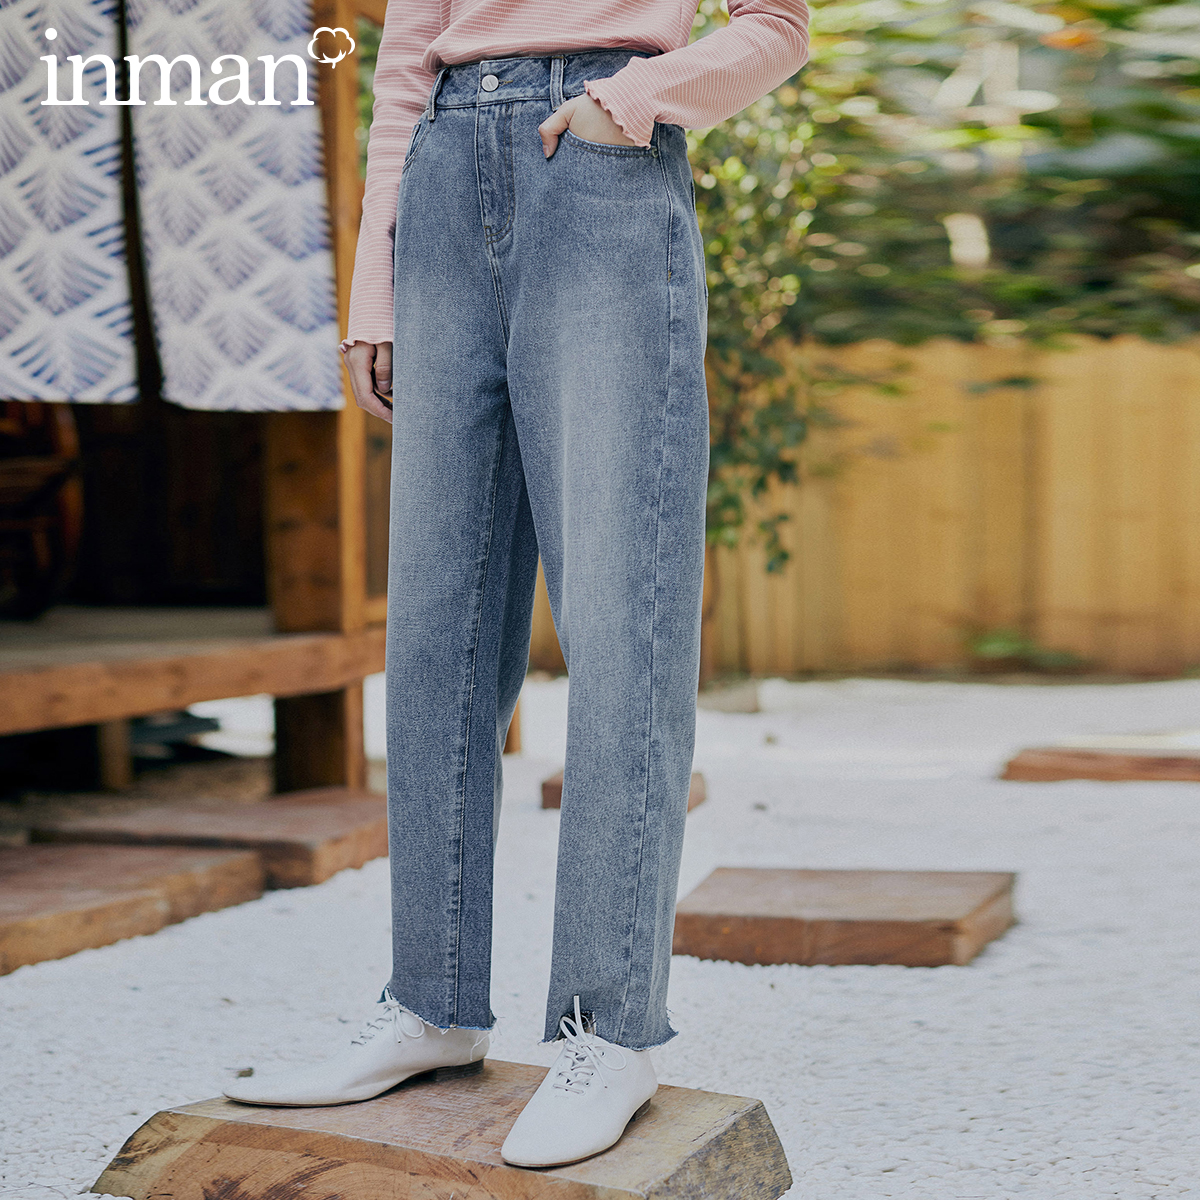 INMAN 2020 Spring New Arrival Literary Pure Cotton High Waist Loose Wash Slimming Straight Cylinder Pant Jeans